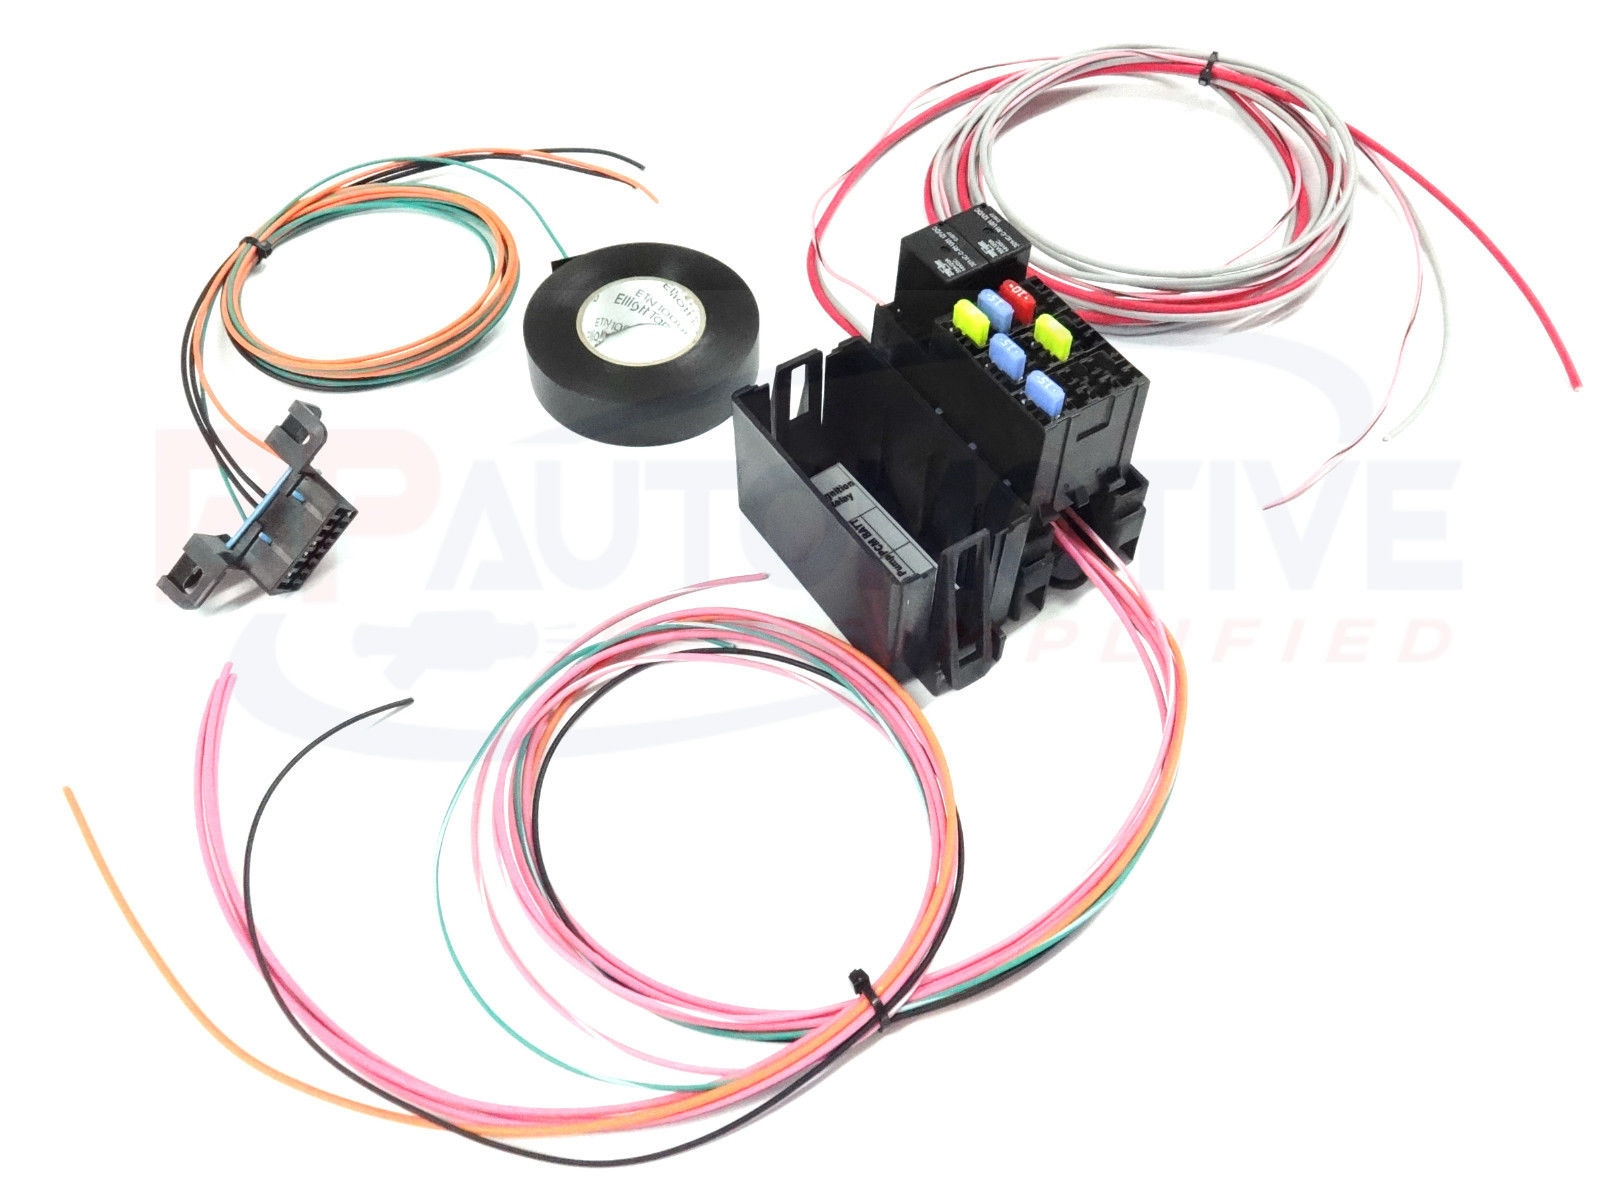 Ls1 Diy Wiring Harness Kit Just Another Diagram Blog Lsx Ls Swap Rework Fuse Block For Standalone Rh Ebay Com